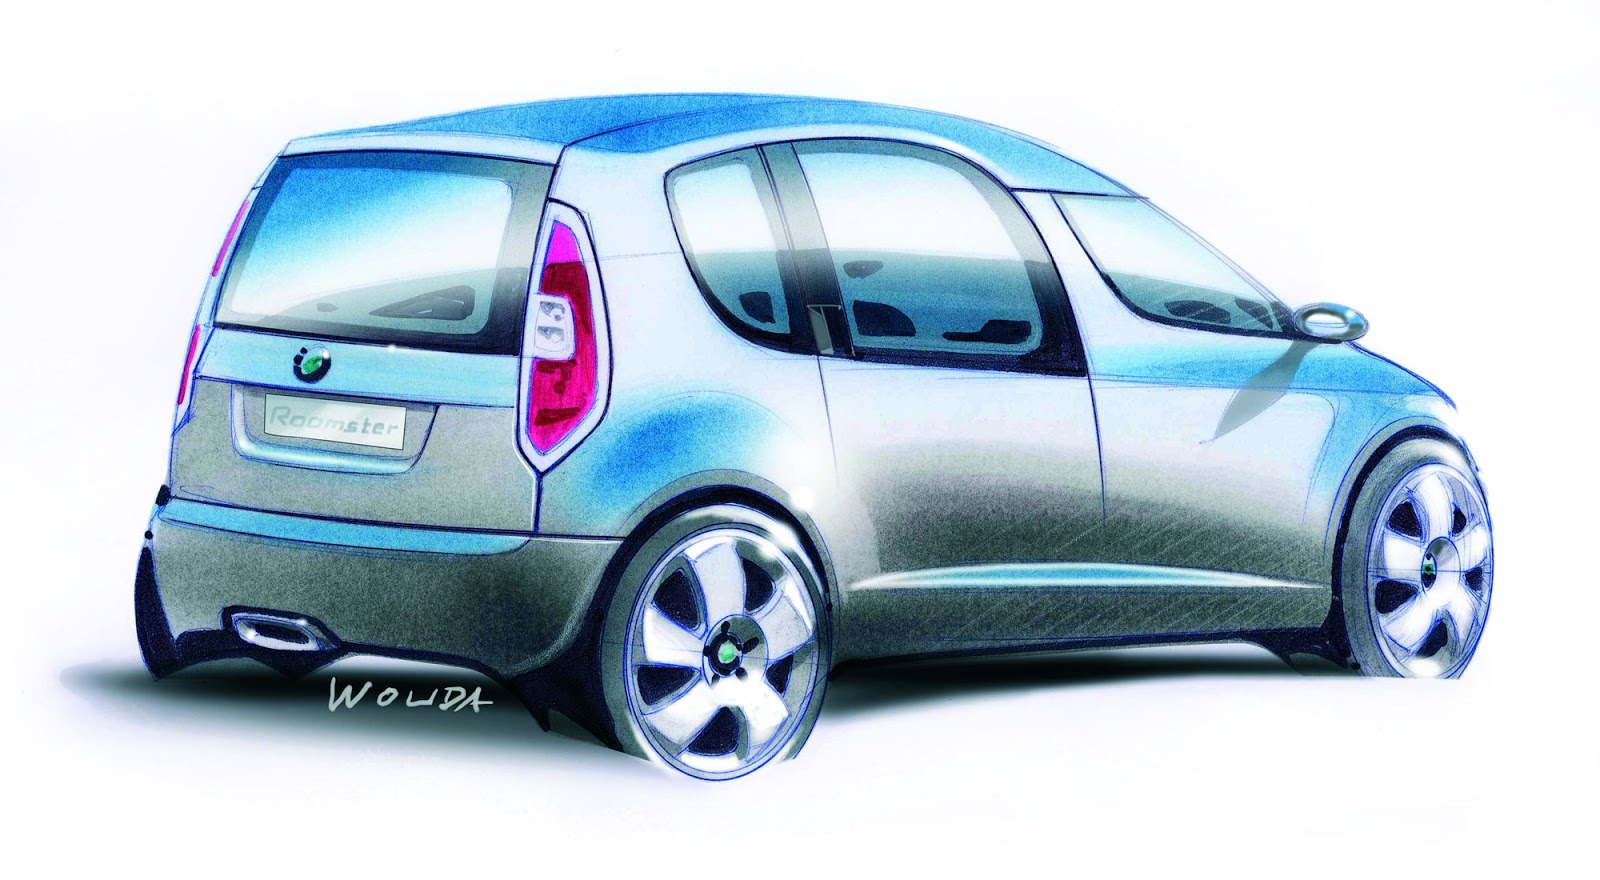 Skoda Roomster sketch by Peter Wouda - final theme, rear quarter view